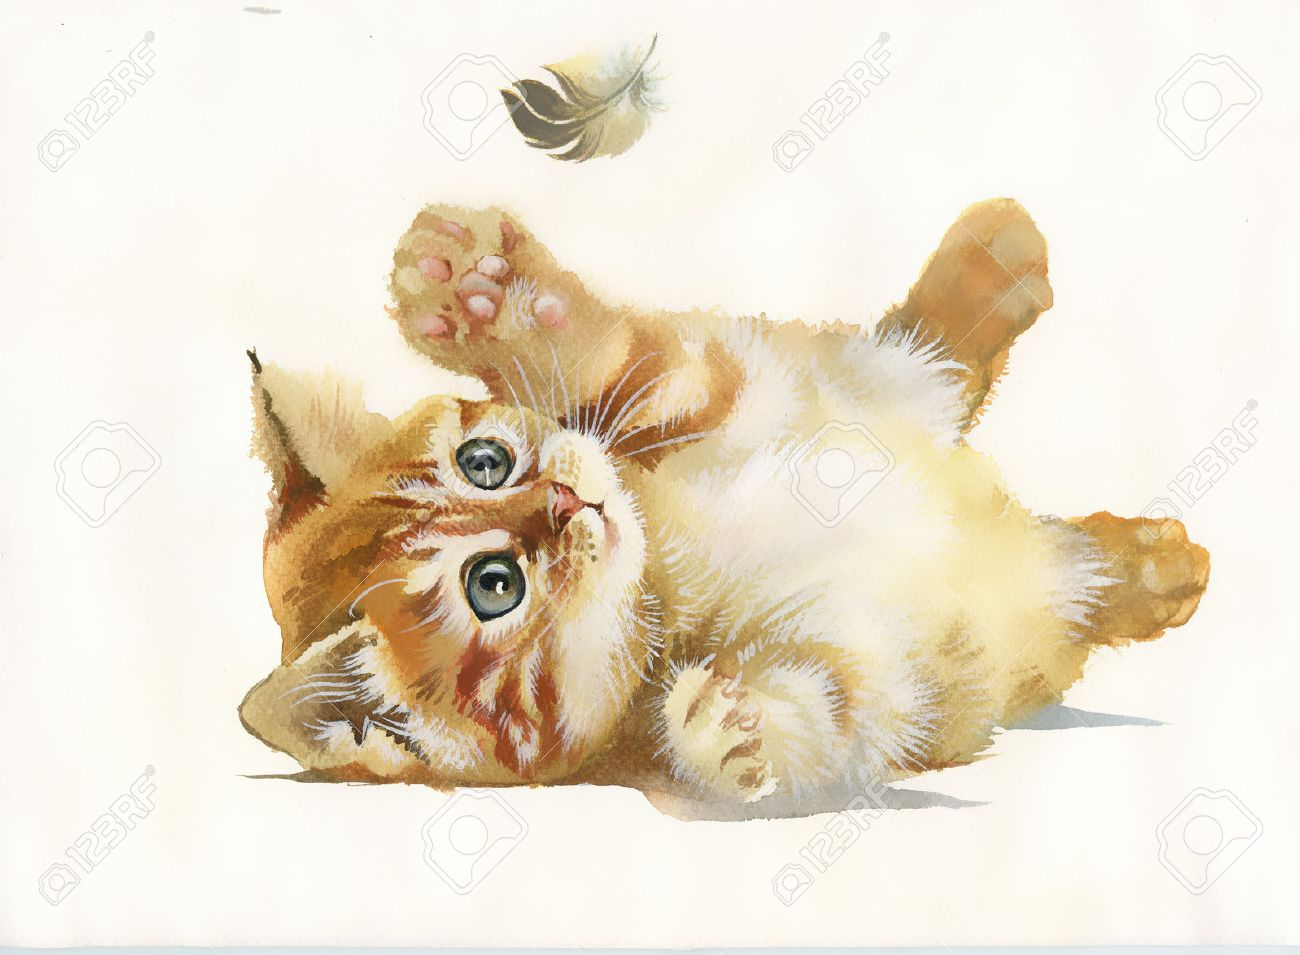 Aquarelle chat de la collection animale et plume Banque dimages , 23482441